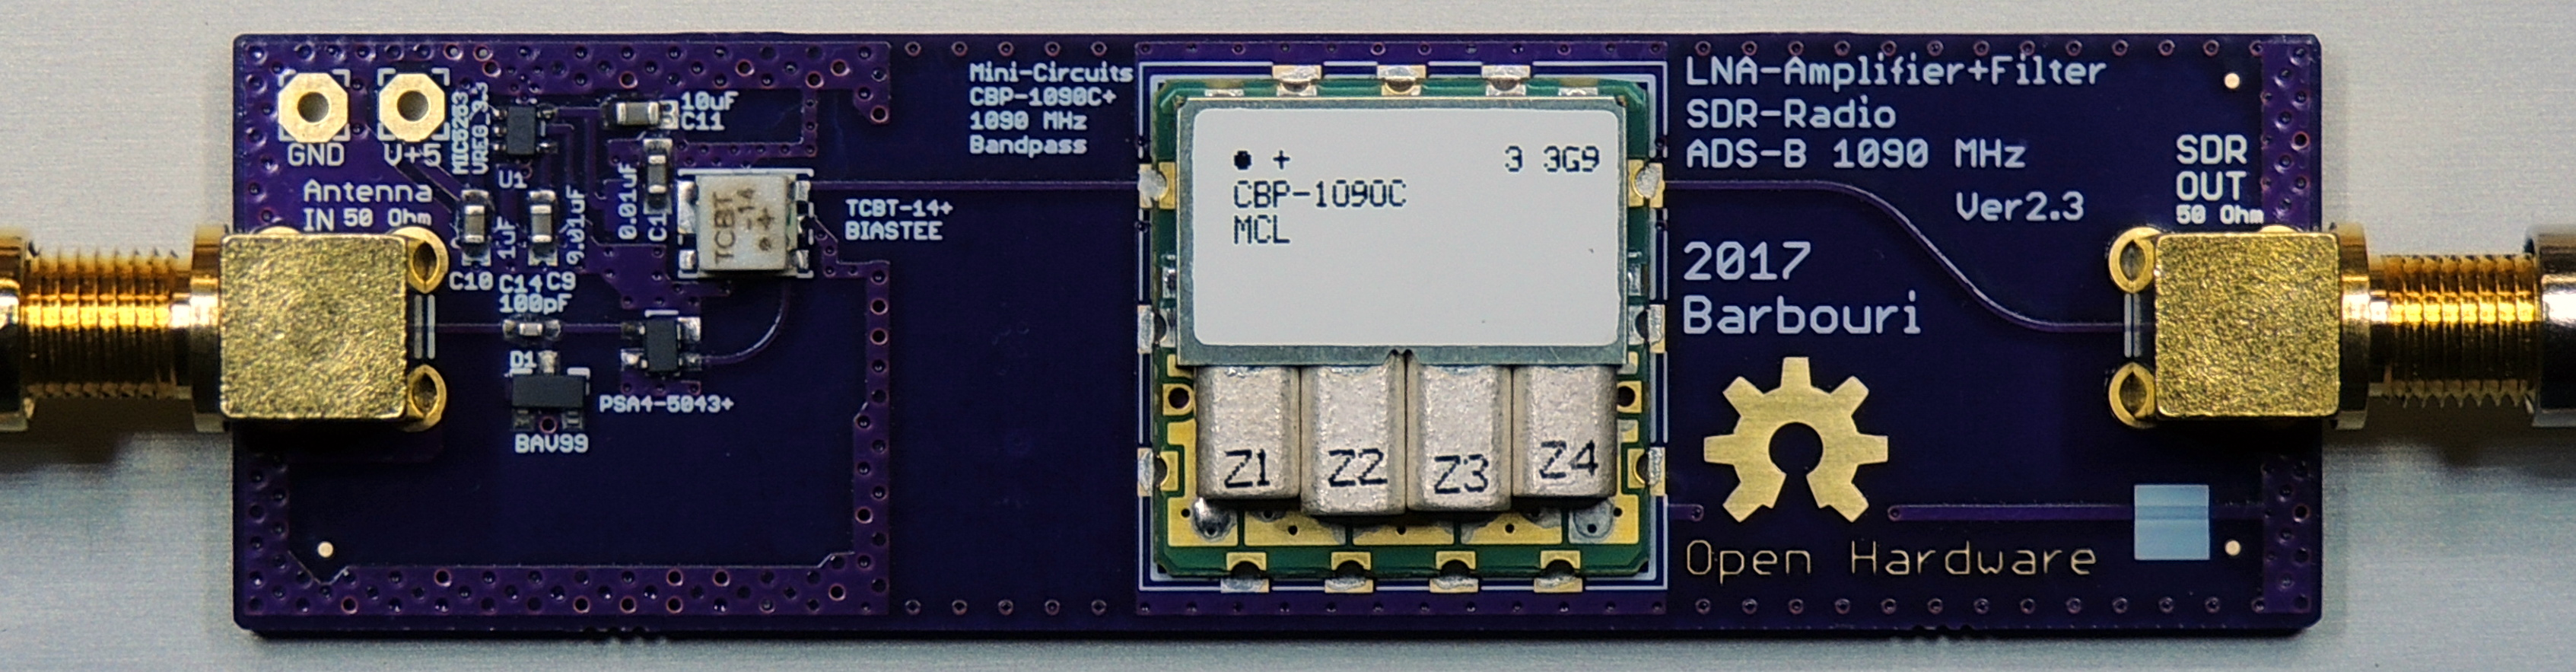 Low Noise Amplifier for SDR Radio ADS-B Ver  2 3 with 1090MHz